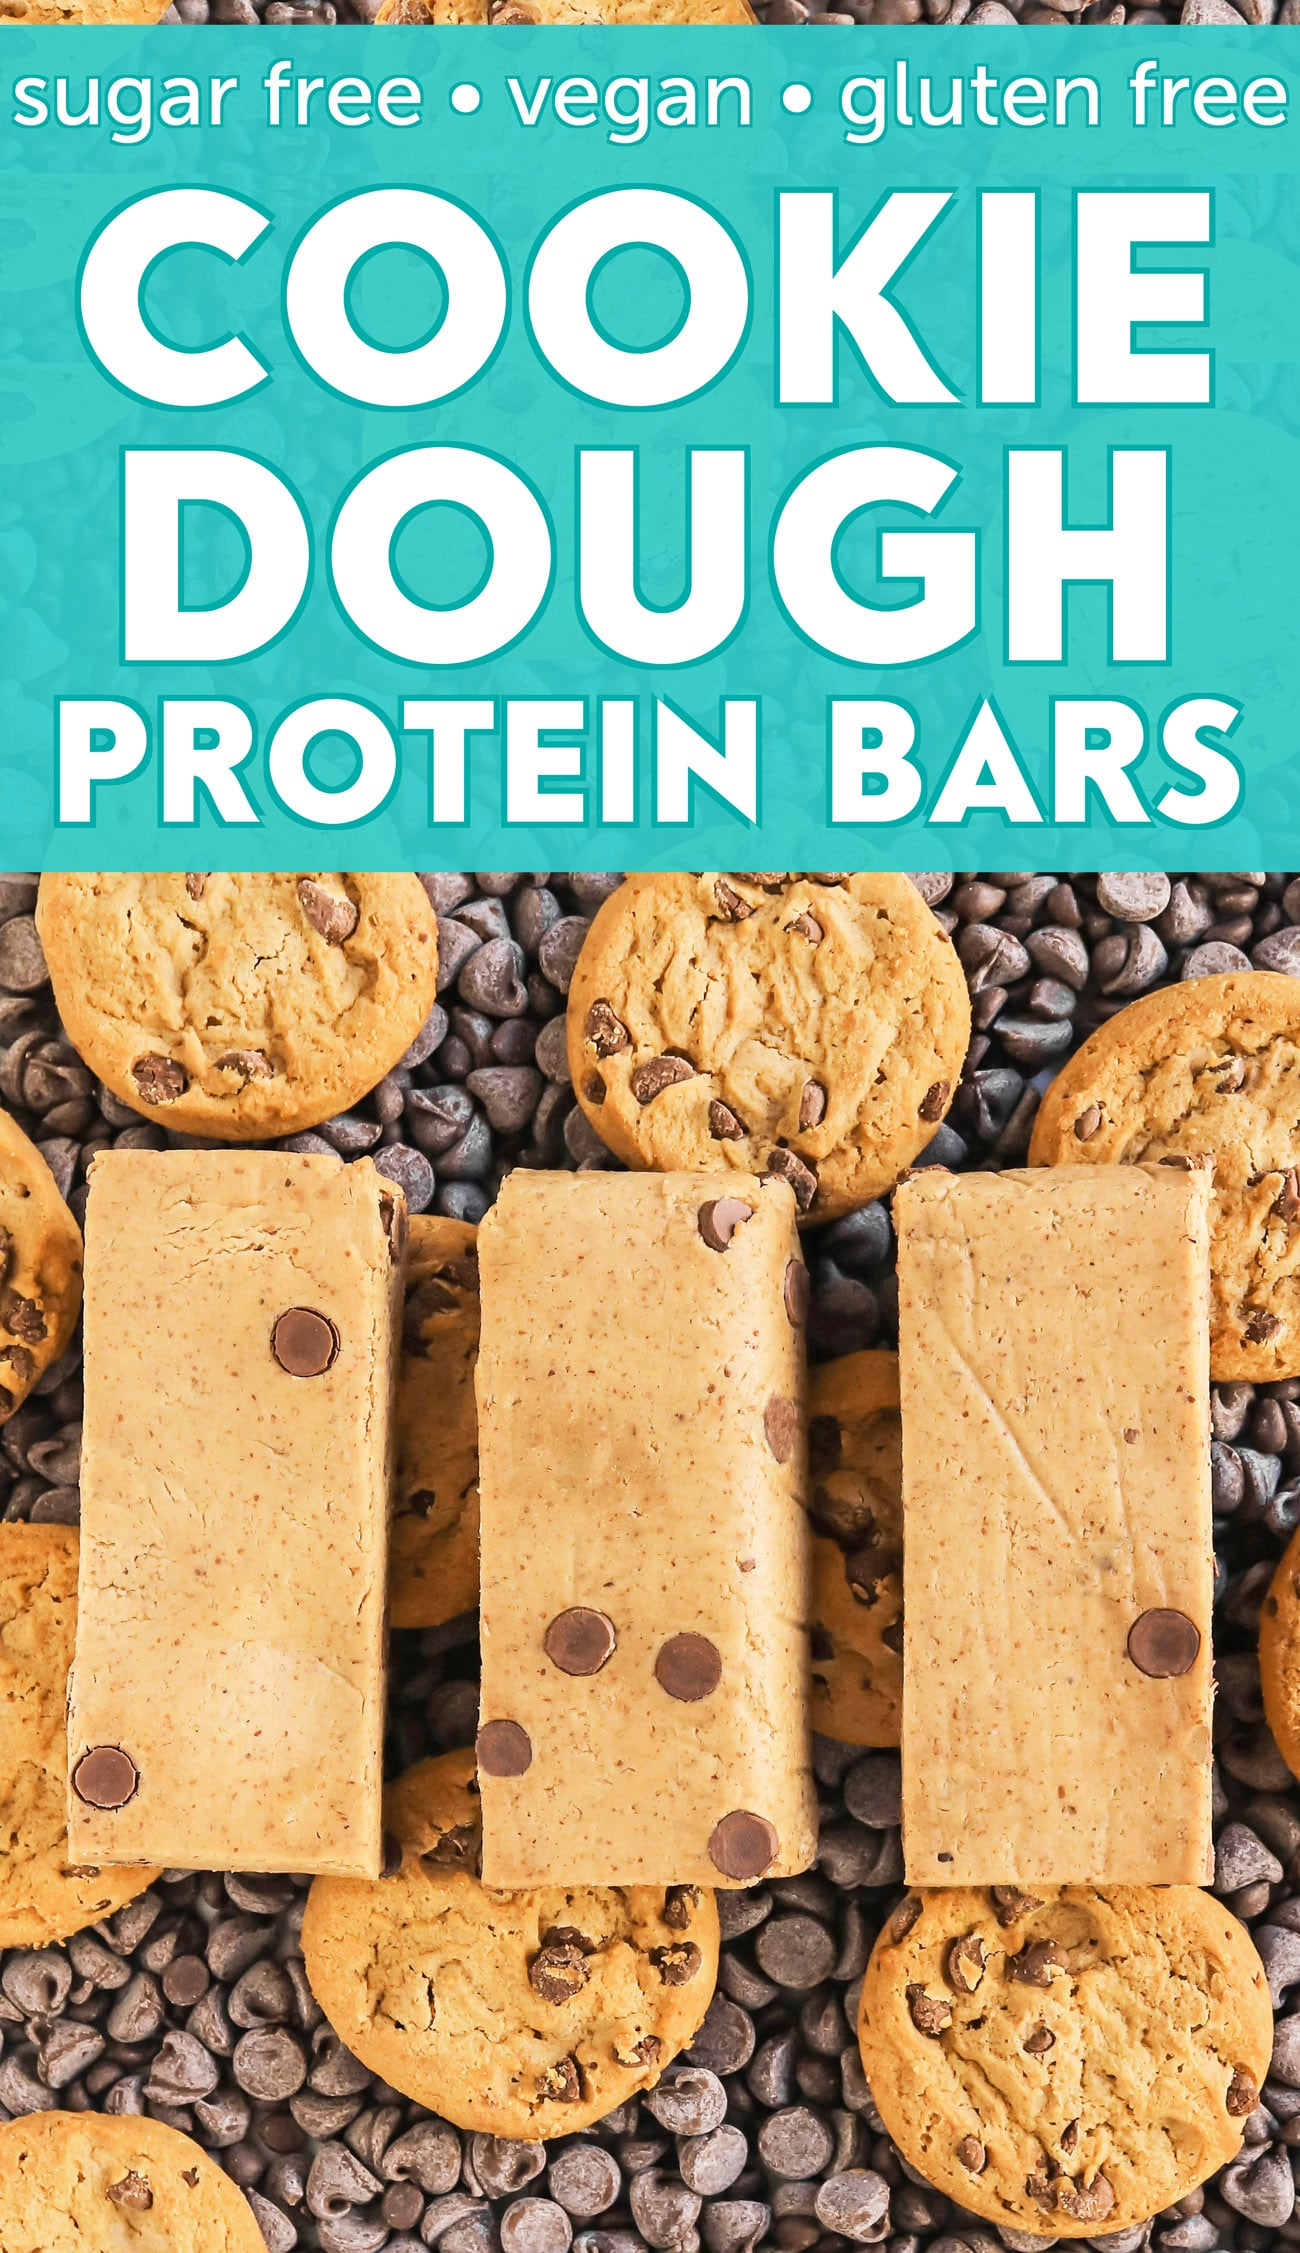 Tired of shelling out cash for protein bars at the store? Make these Cookie Dough Protein Bars instead, thanks to The DIY Protein Bars Cookbook -- 48 no-bake homemade protein bars recipes to satisfy your sweet tooth! With sugar free, gluten free, dairy free, and vegan options.